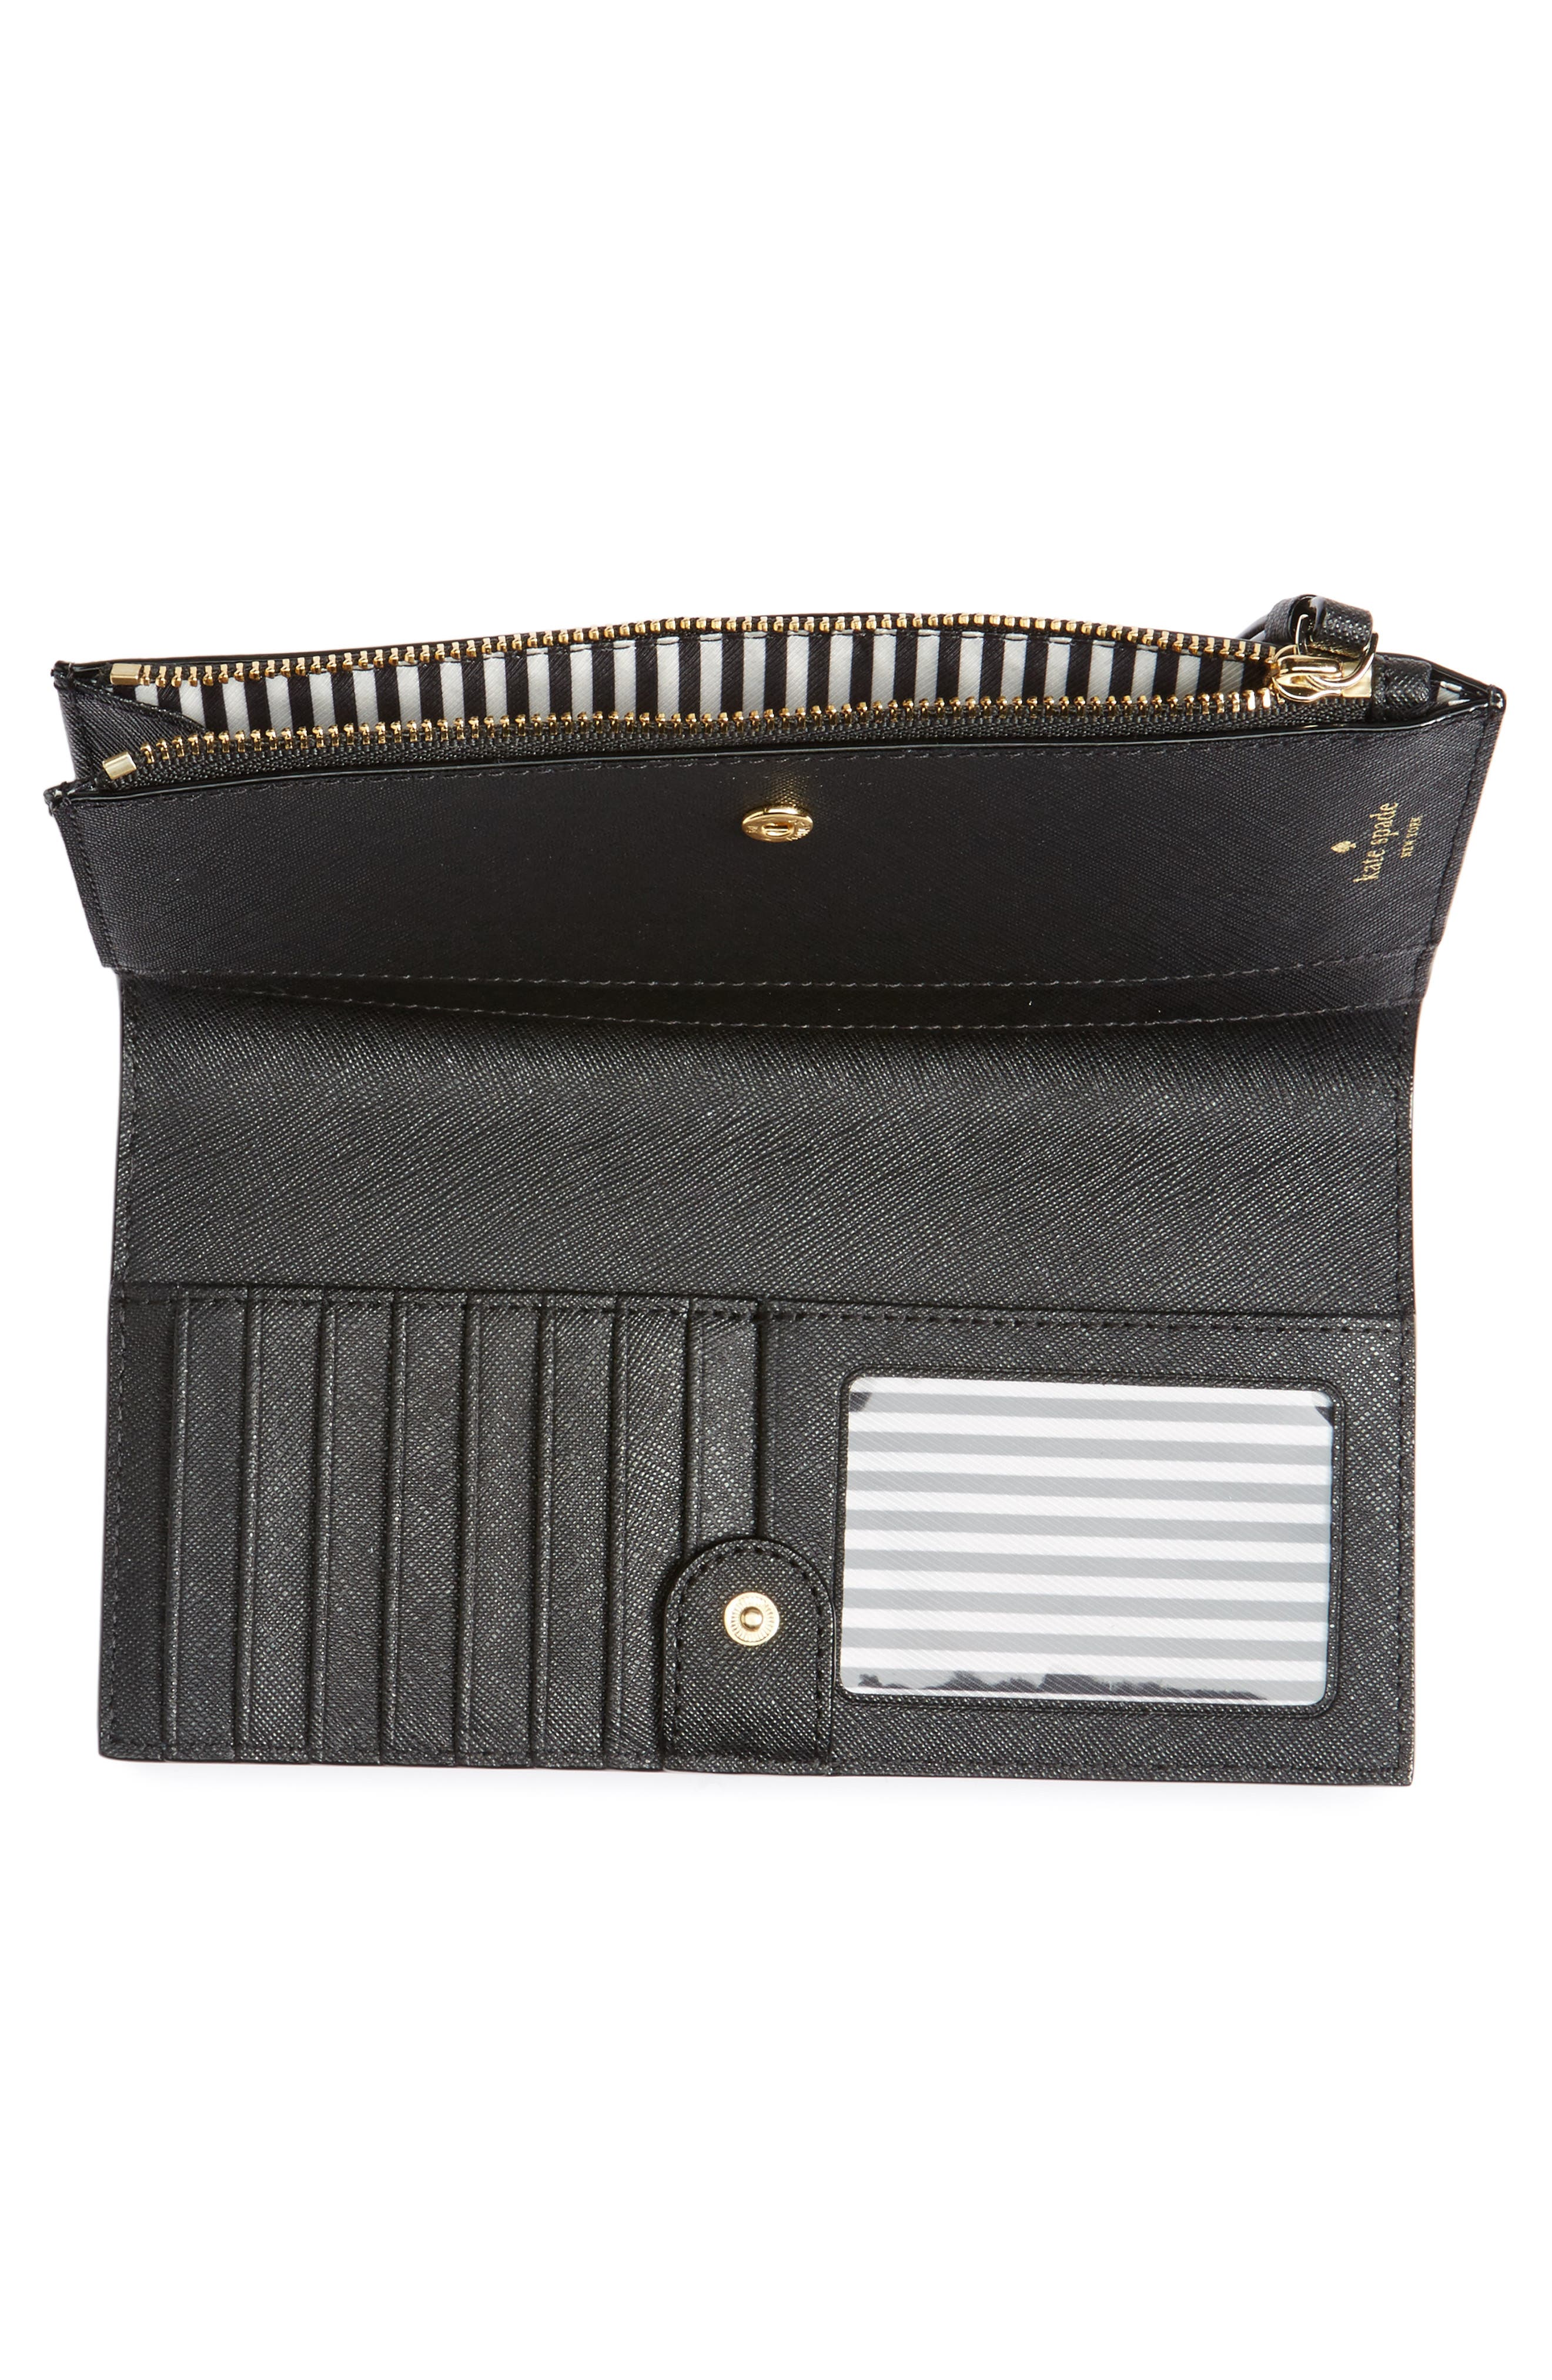 cameron street - eliza leather wallet,                             Alternate thumbnail 2, color,                             Black